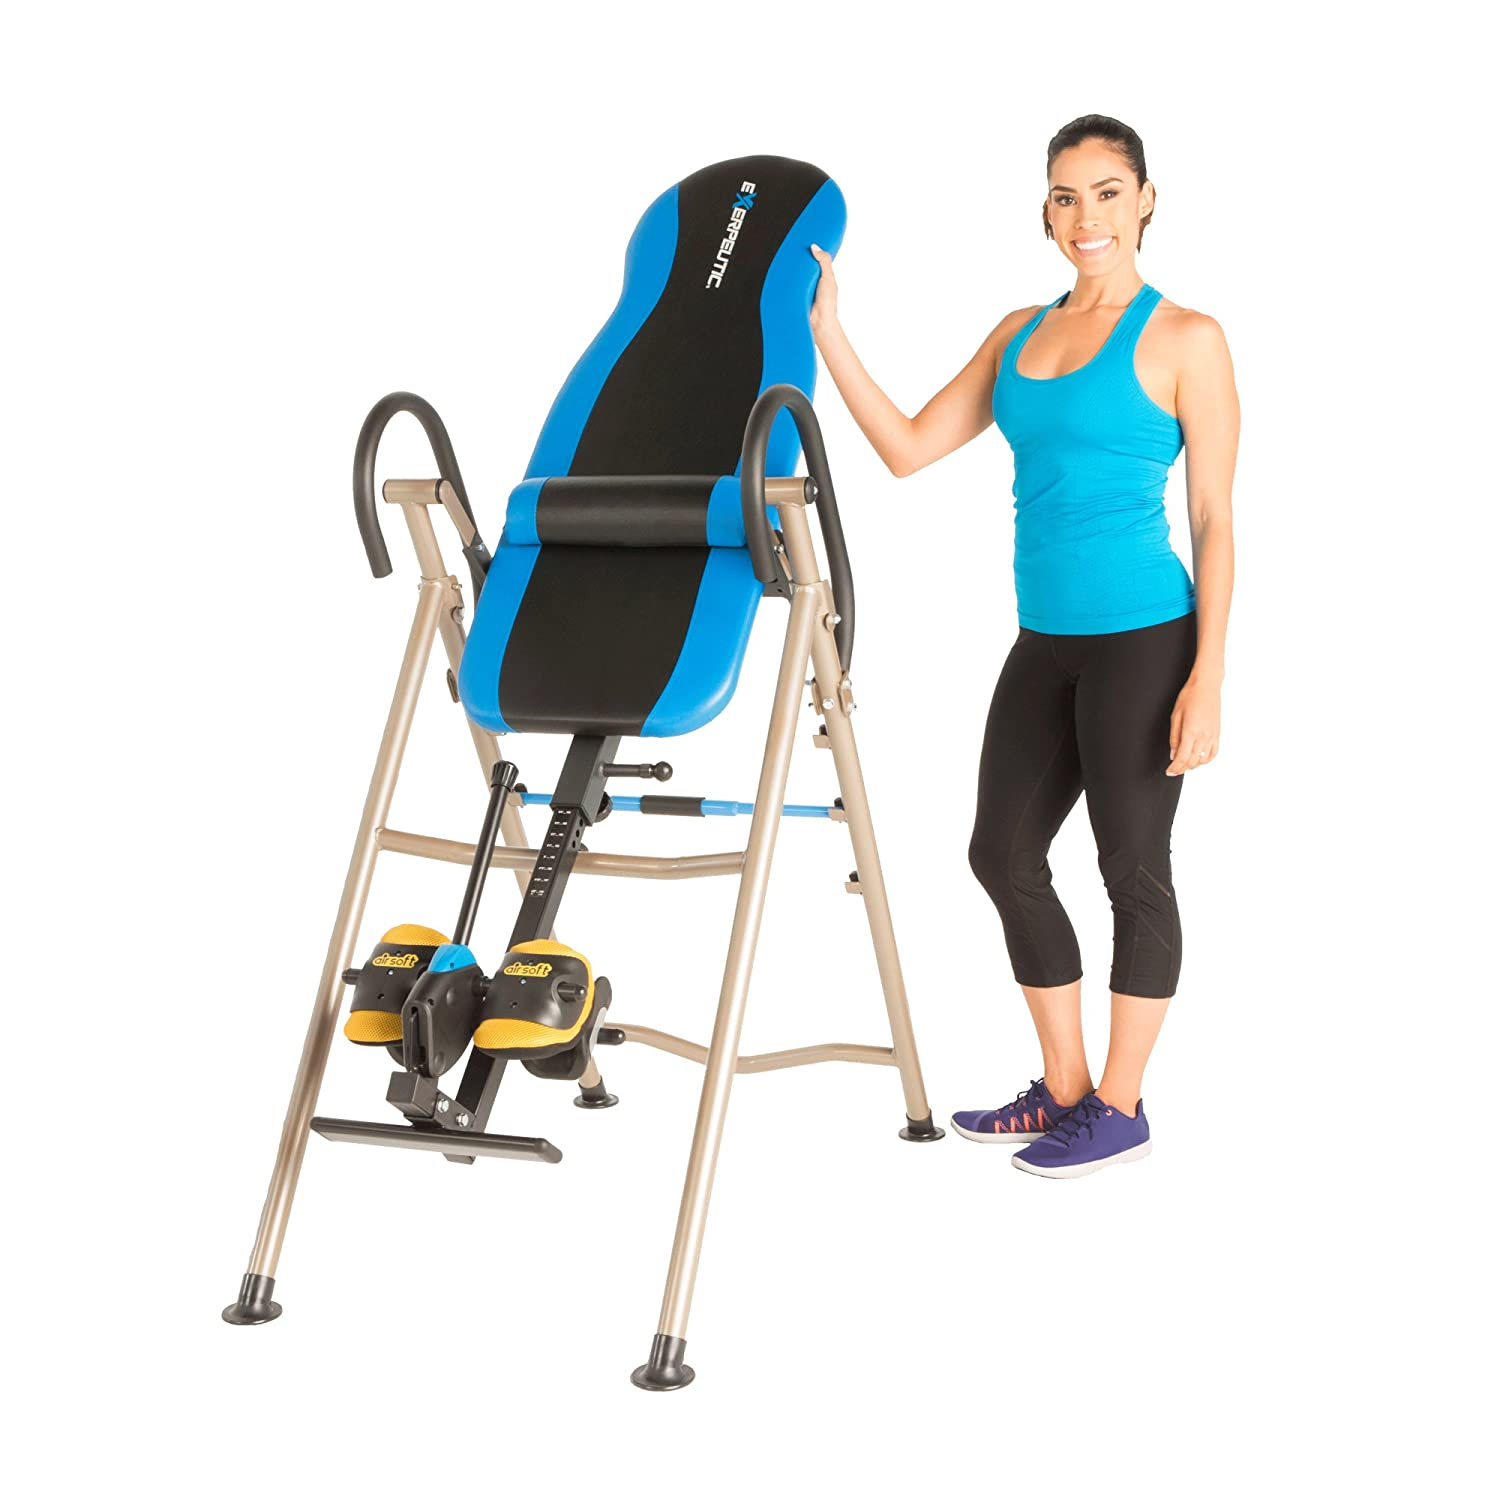 EXERPEUTIC Inversion Table with AIRSOFT NO PINCH Ankle Holders, SURELOCK Safety Ratchet System, and Lumbar Support